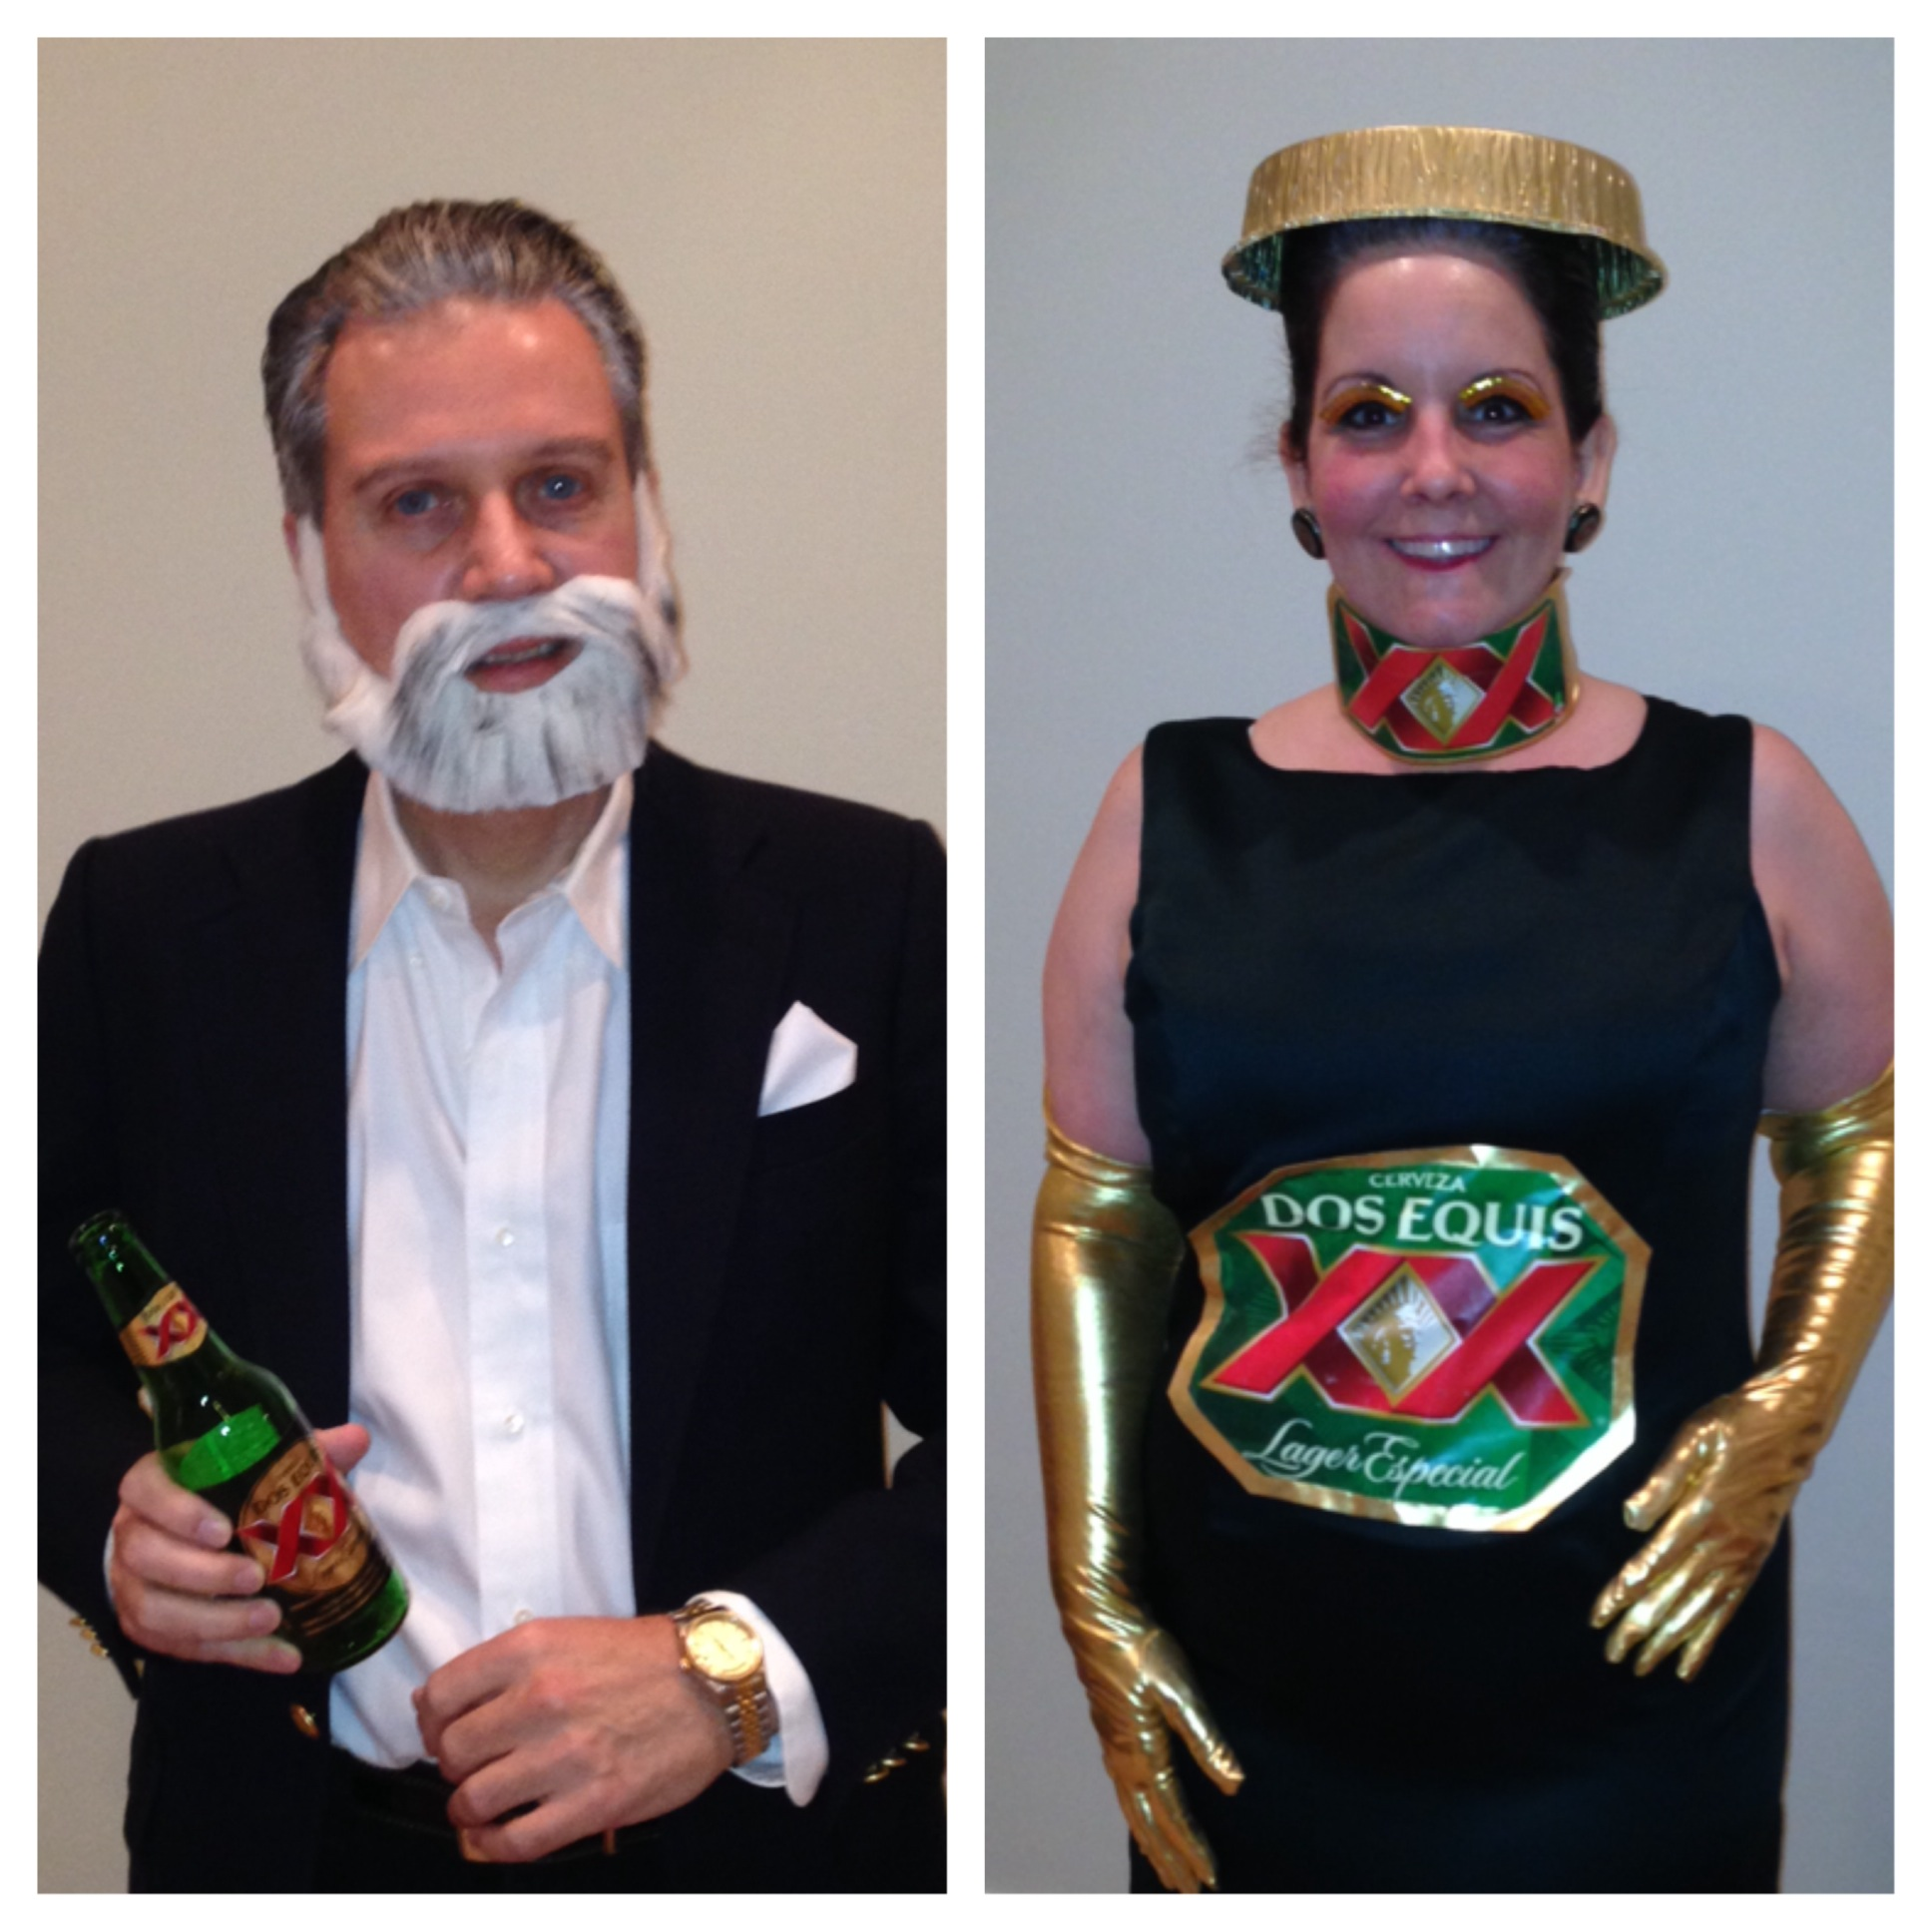 Dos Equis costume  sc 1 st  Weu0027re Calling Shenanigans & 10 Clever Last Minute Homemade Costumes - Weu0027re Calling Shenanigans